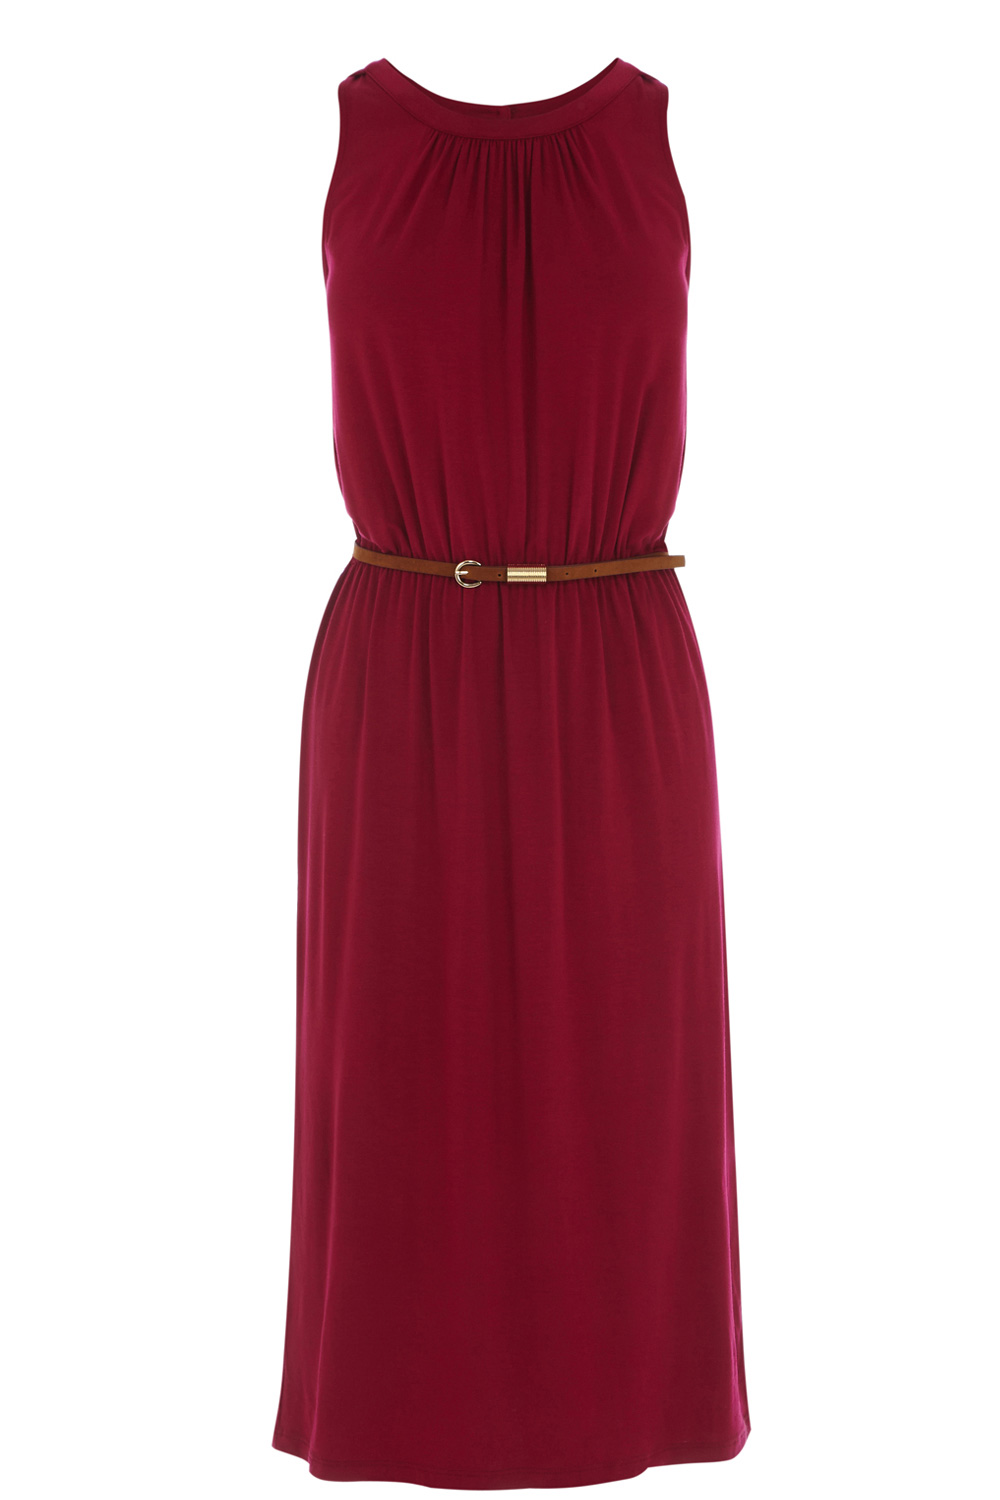 Oasis, The Must Have Midi, £26